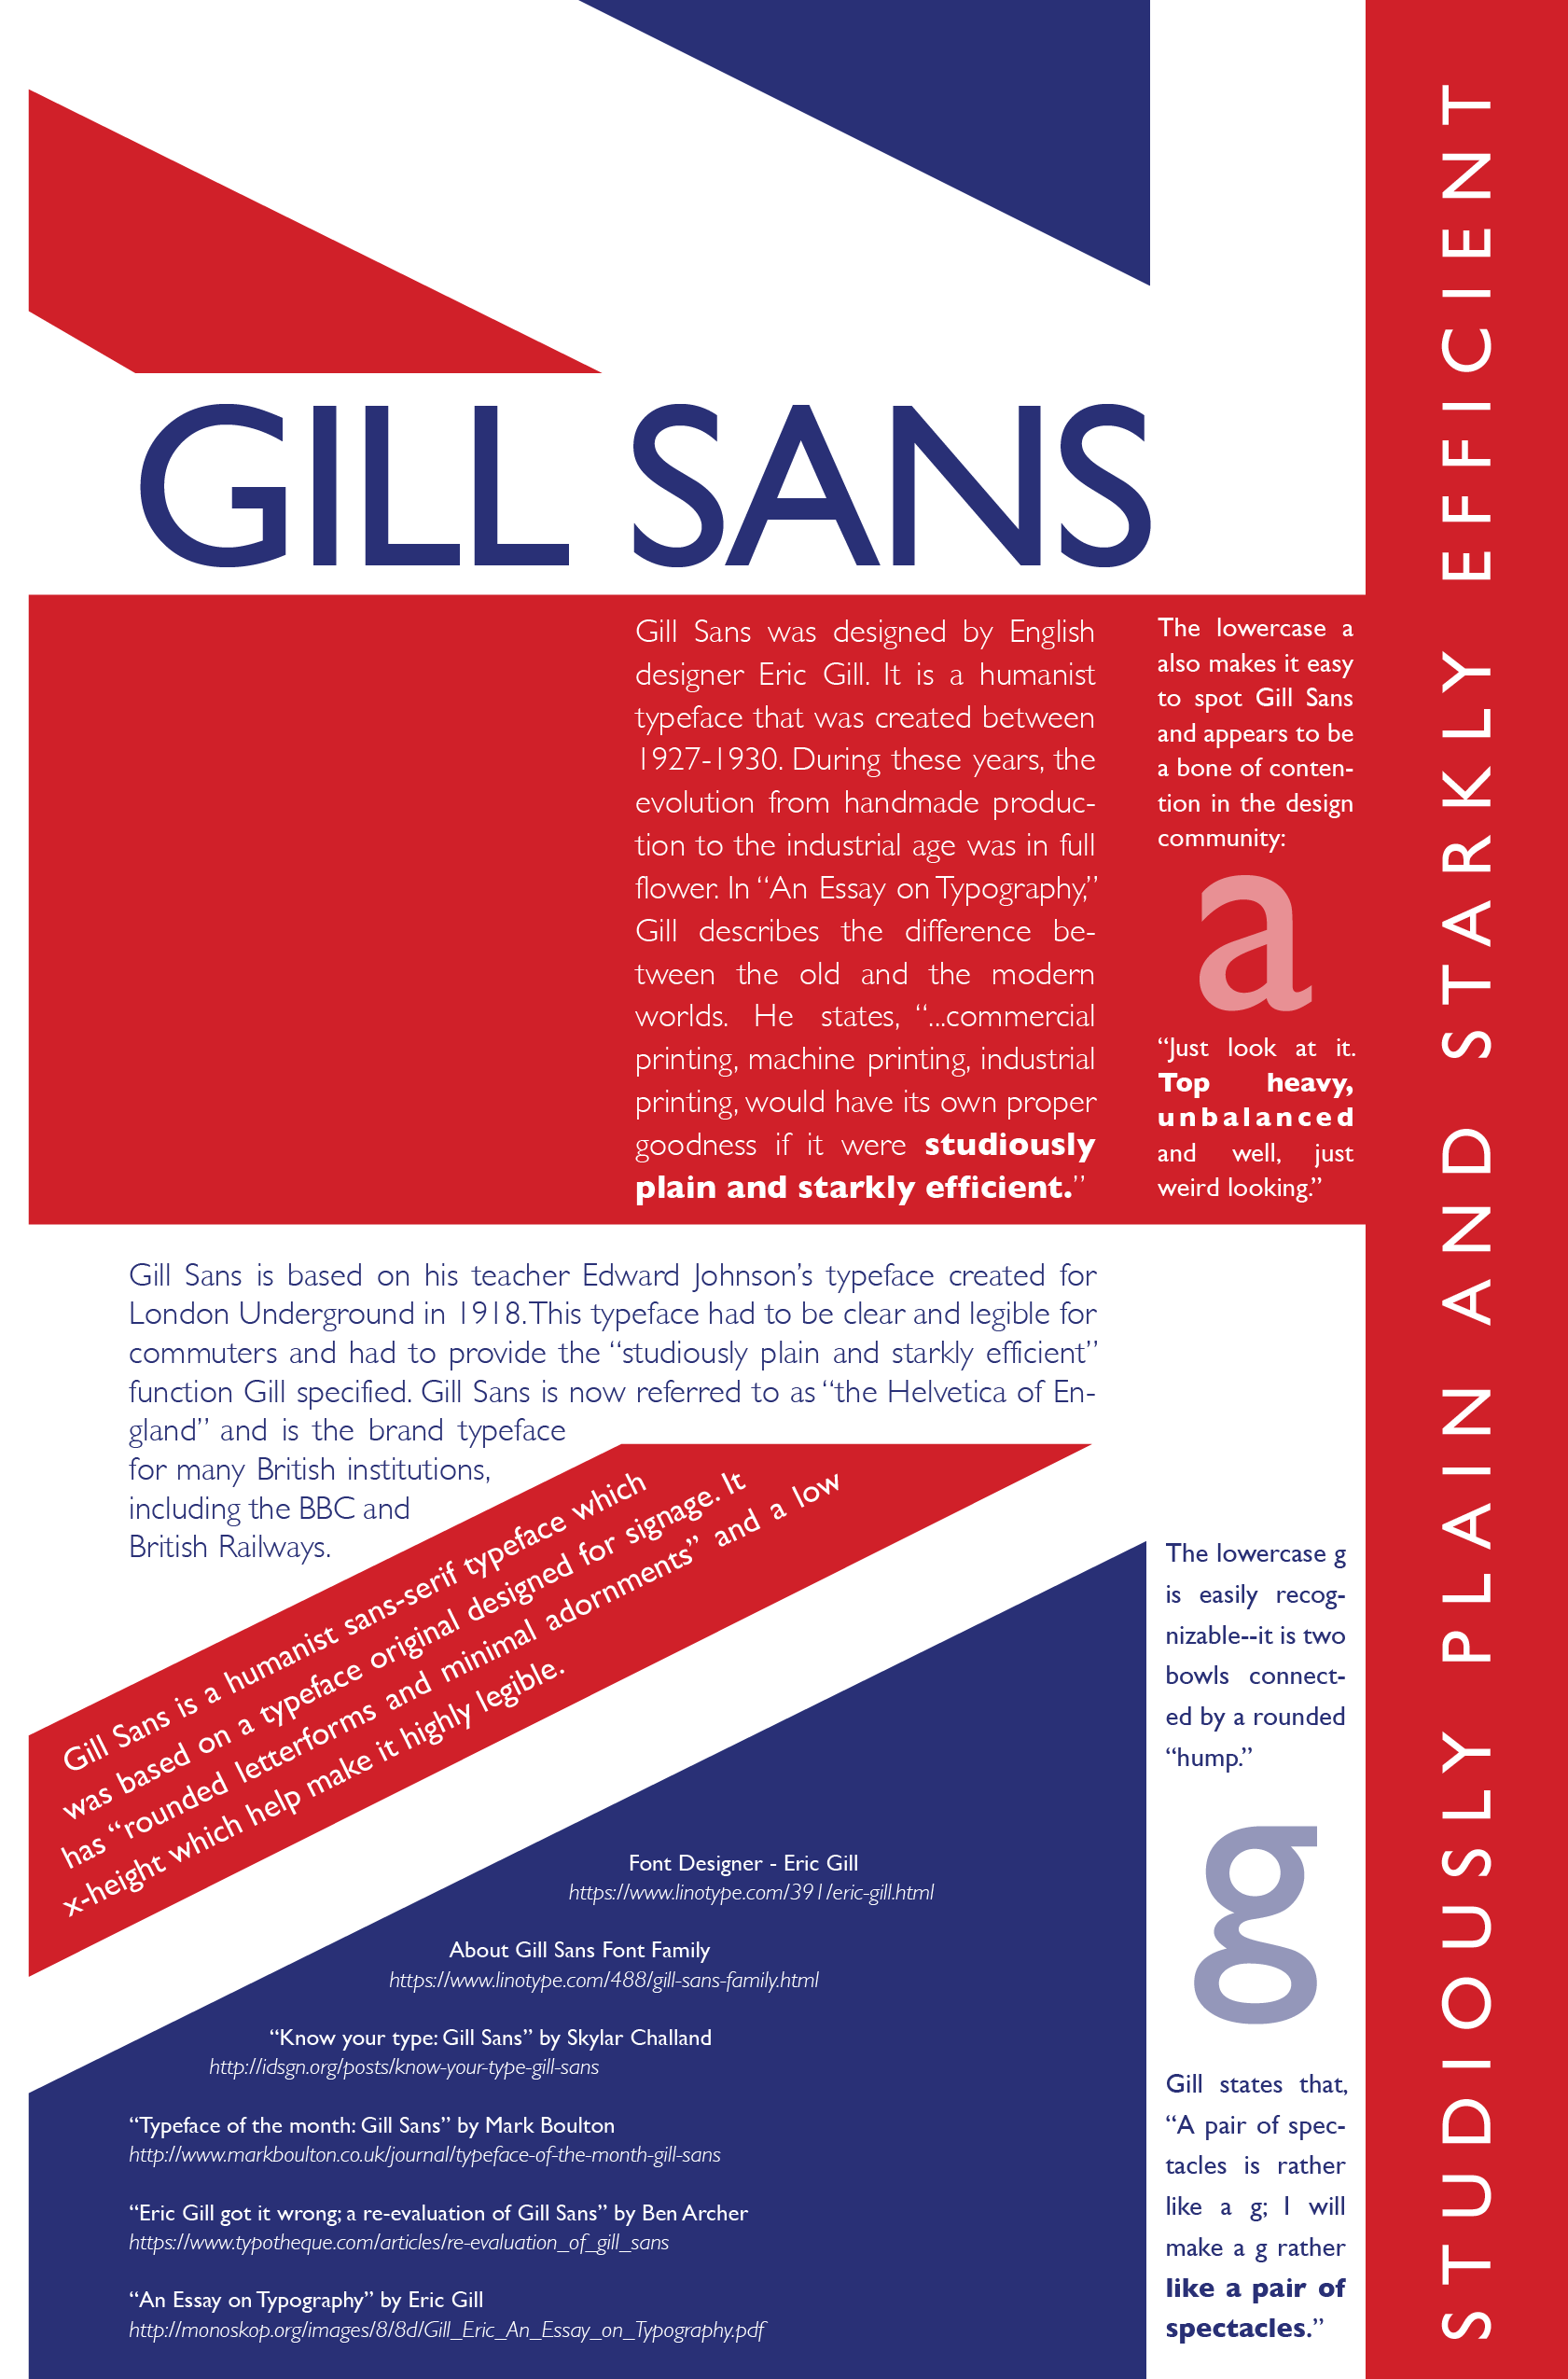 Poster: This is an homage to one of my favorite typefaces, part of a specialization certificate in graphic design from CalArts.